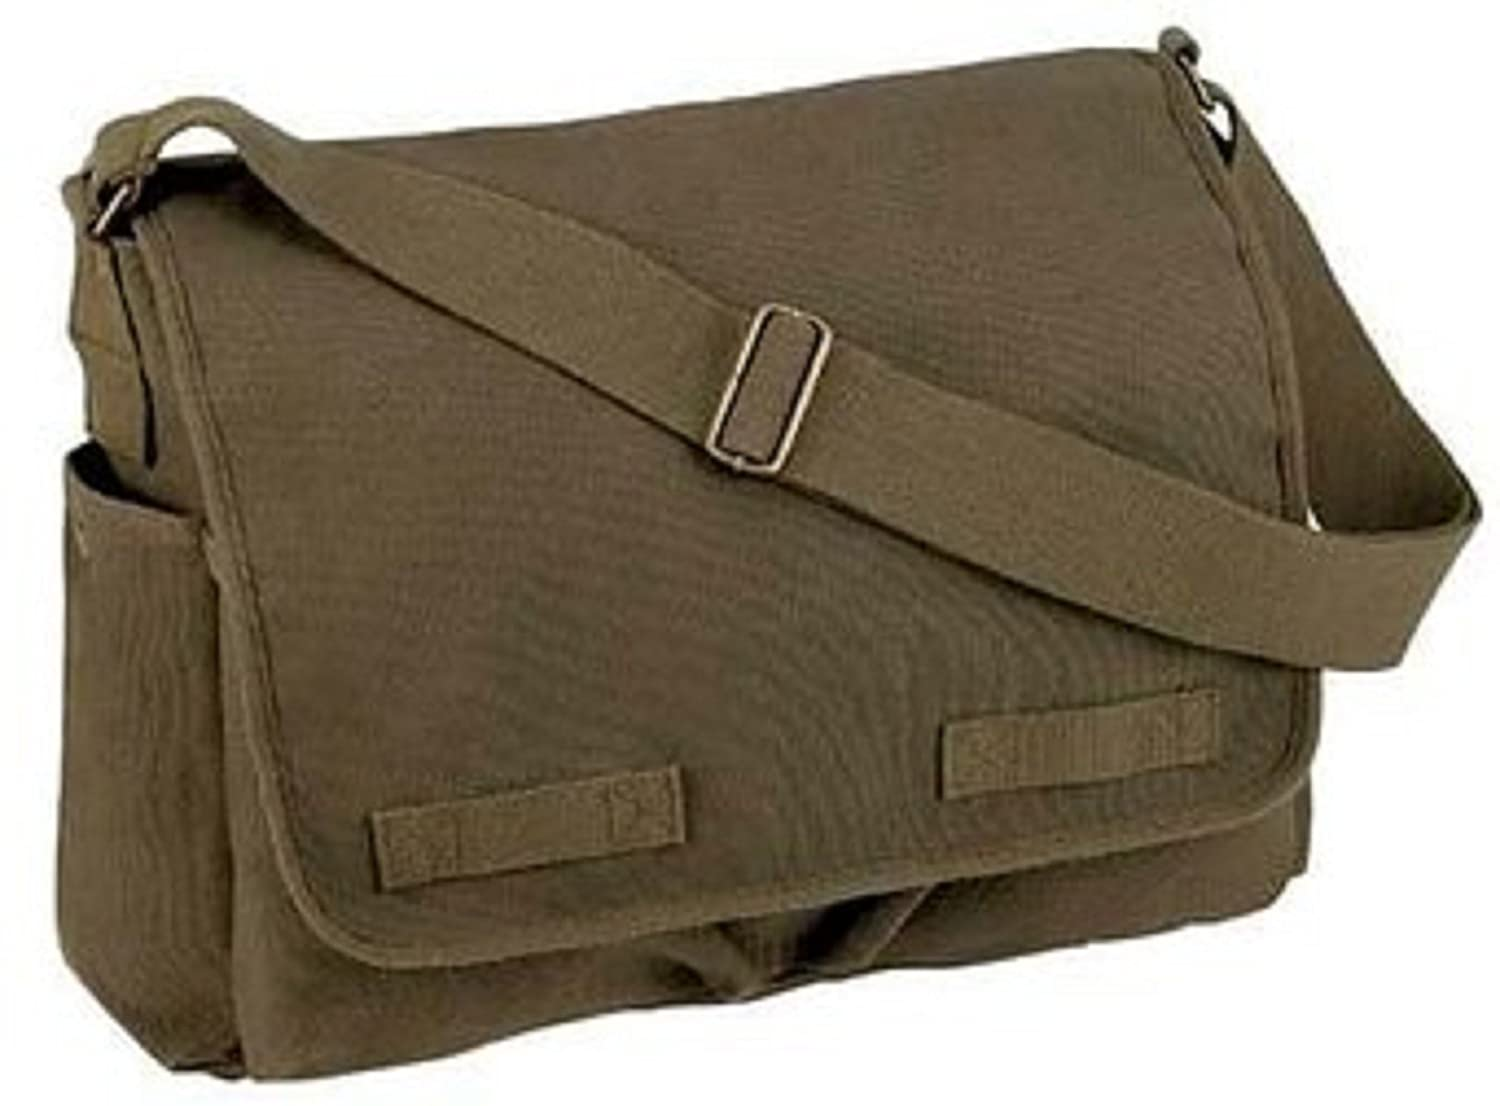 9148 Messenger Bag Olive Drab